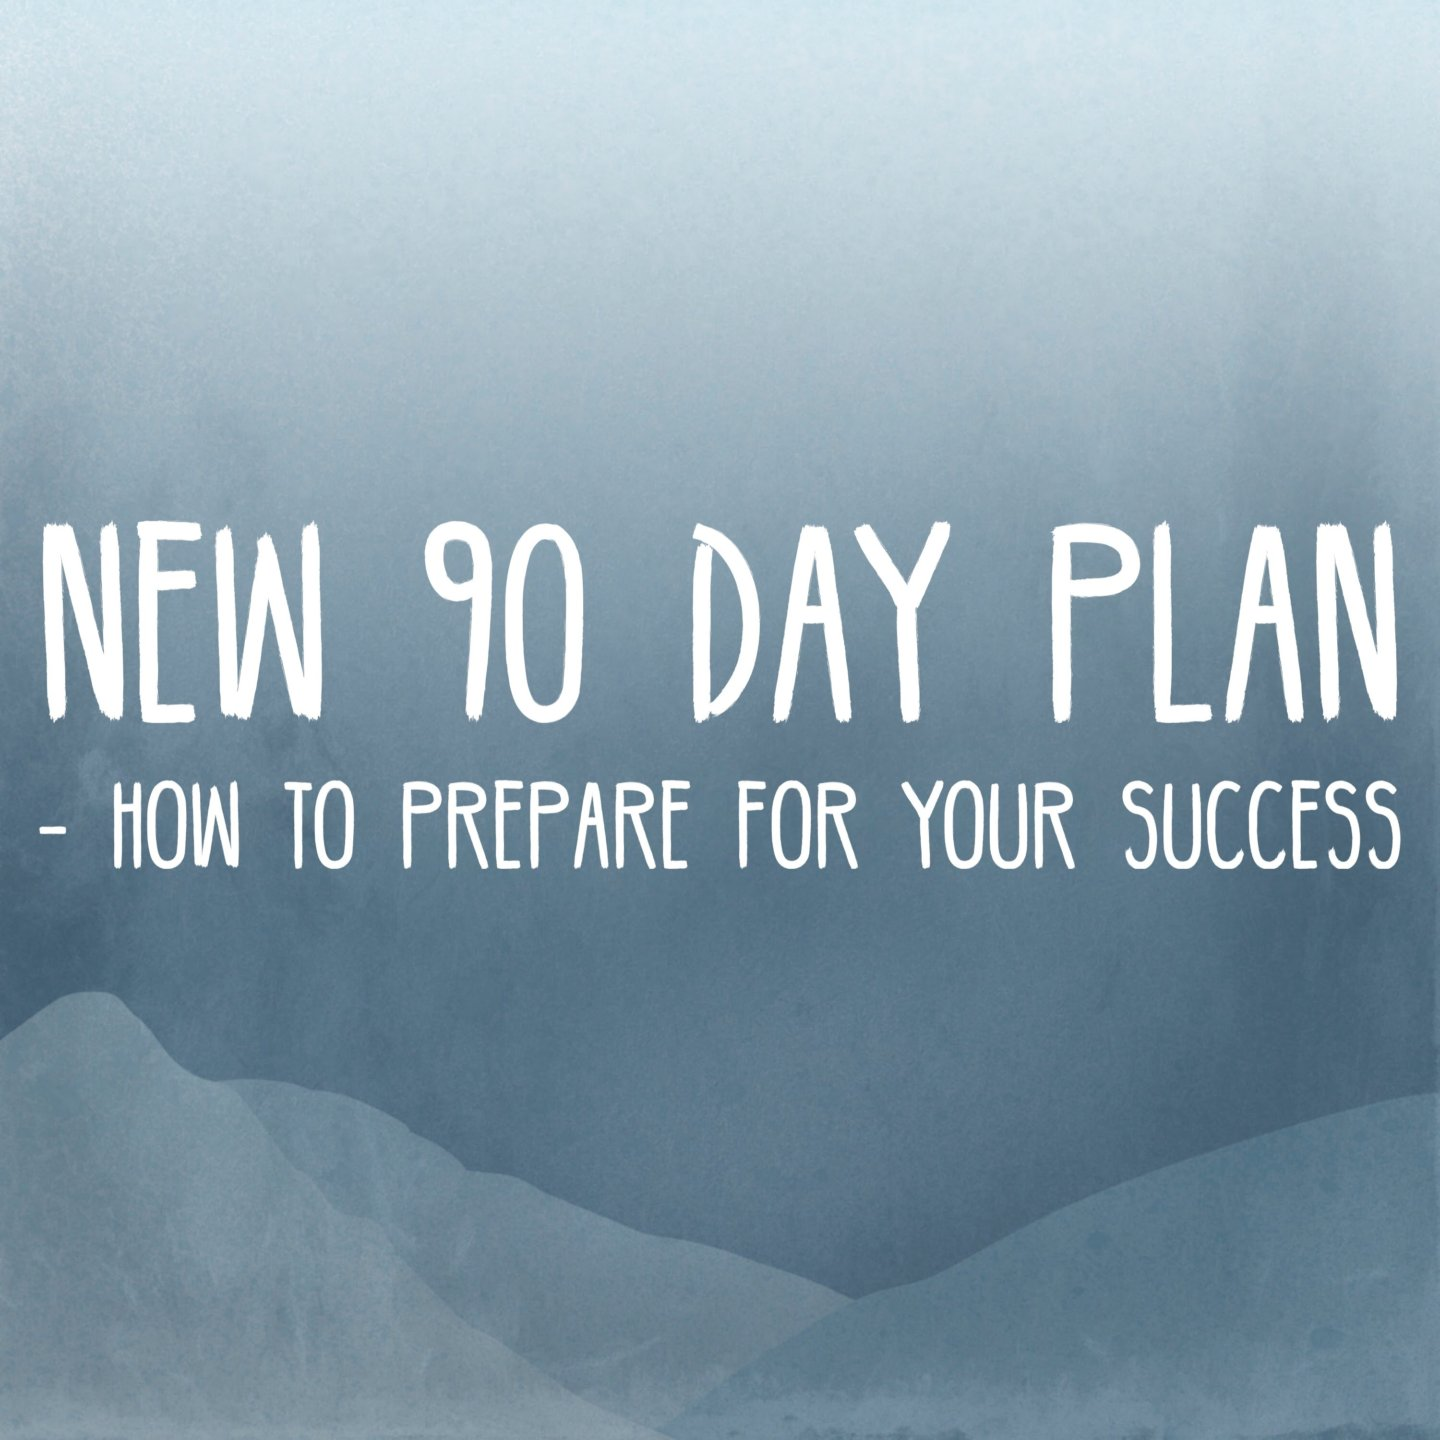 New 90 Day Plan, how to prepare for success!